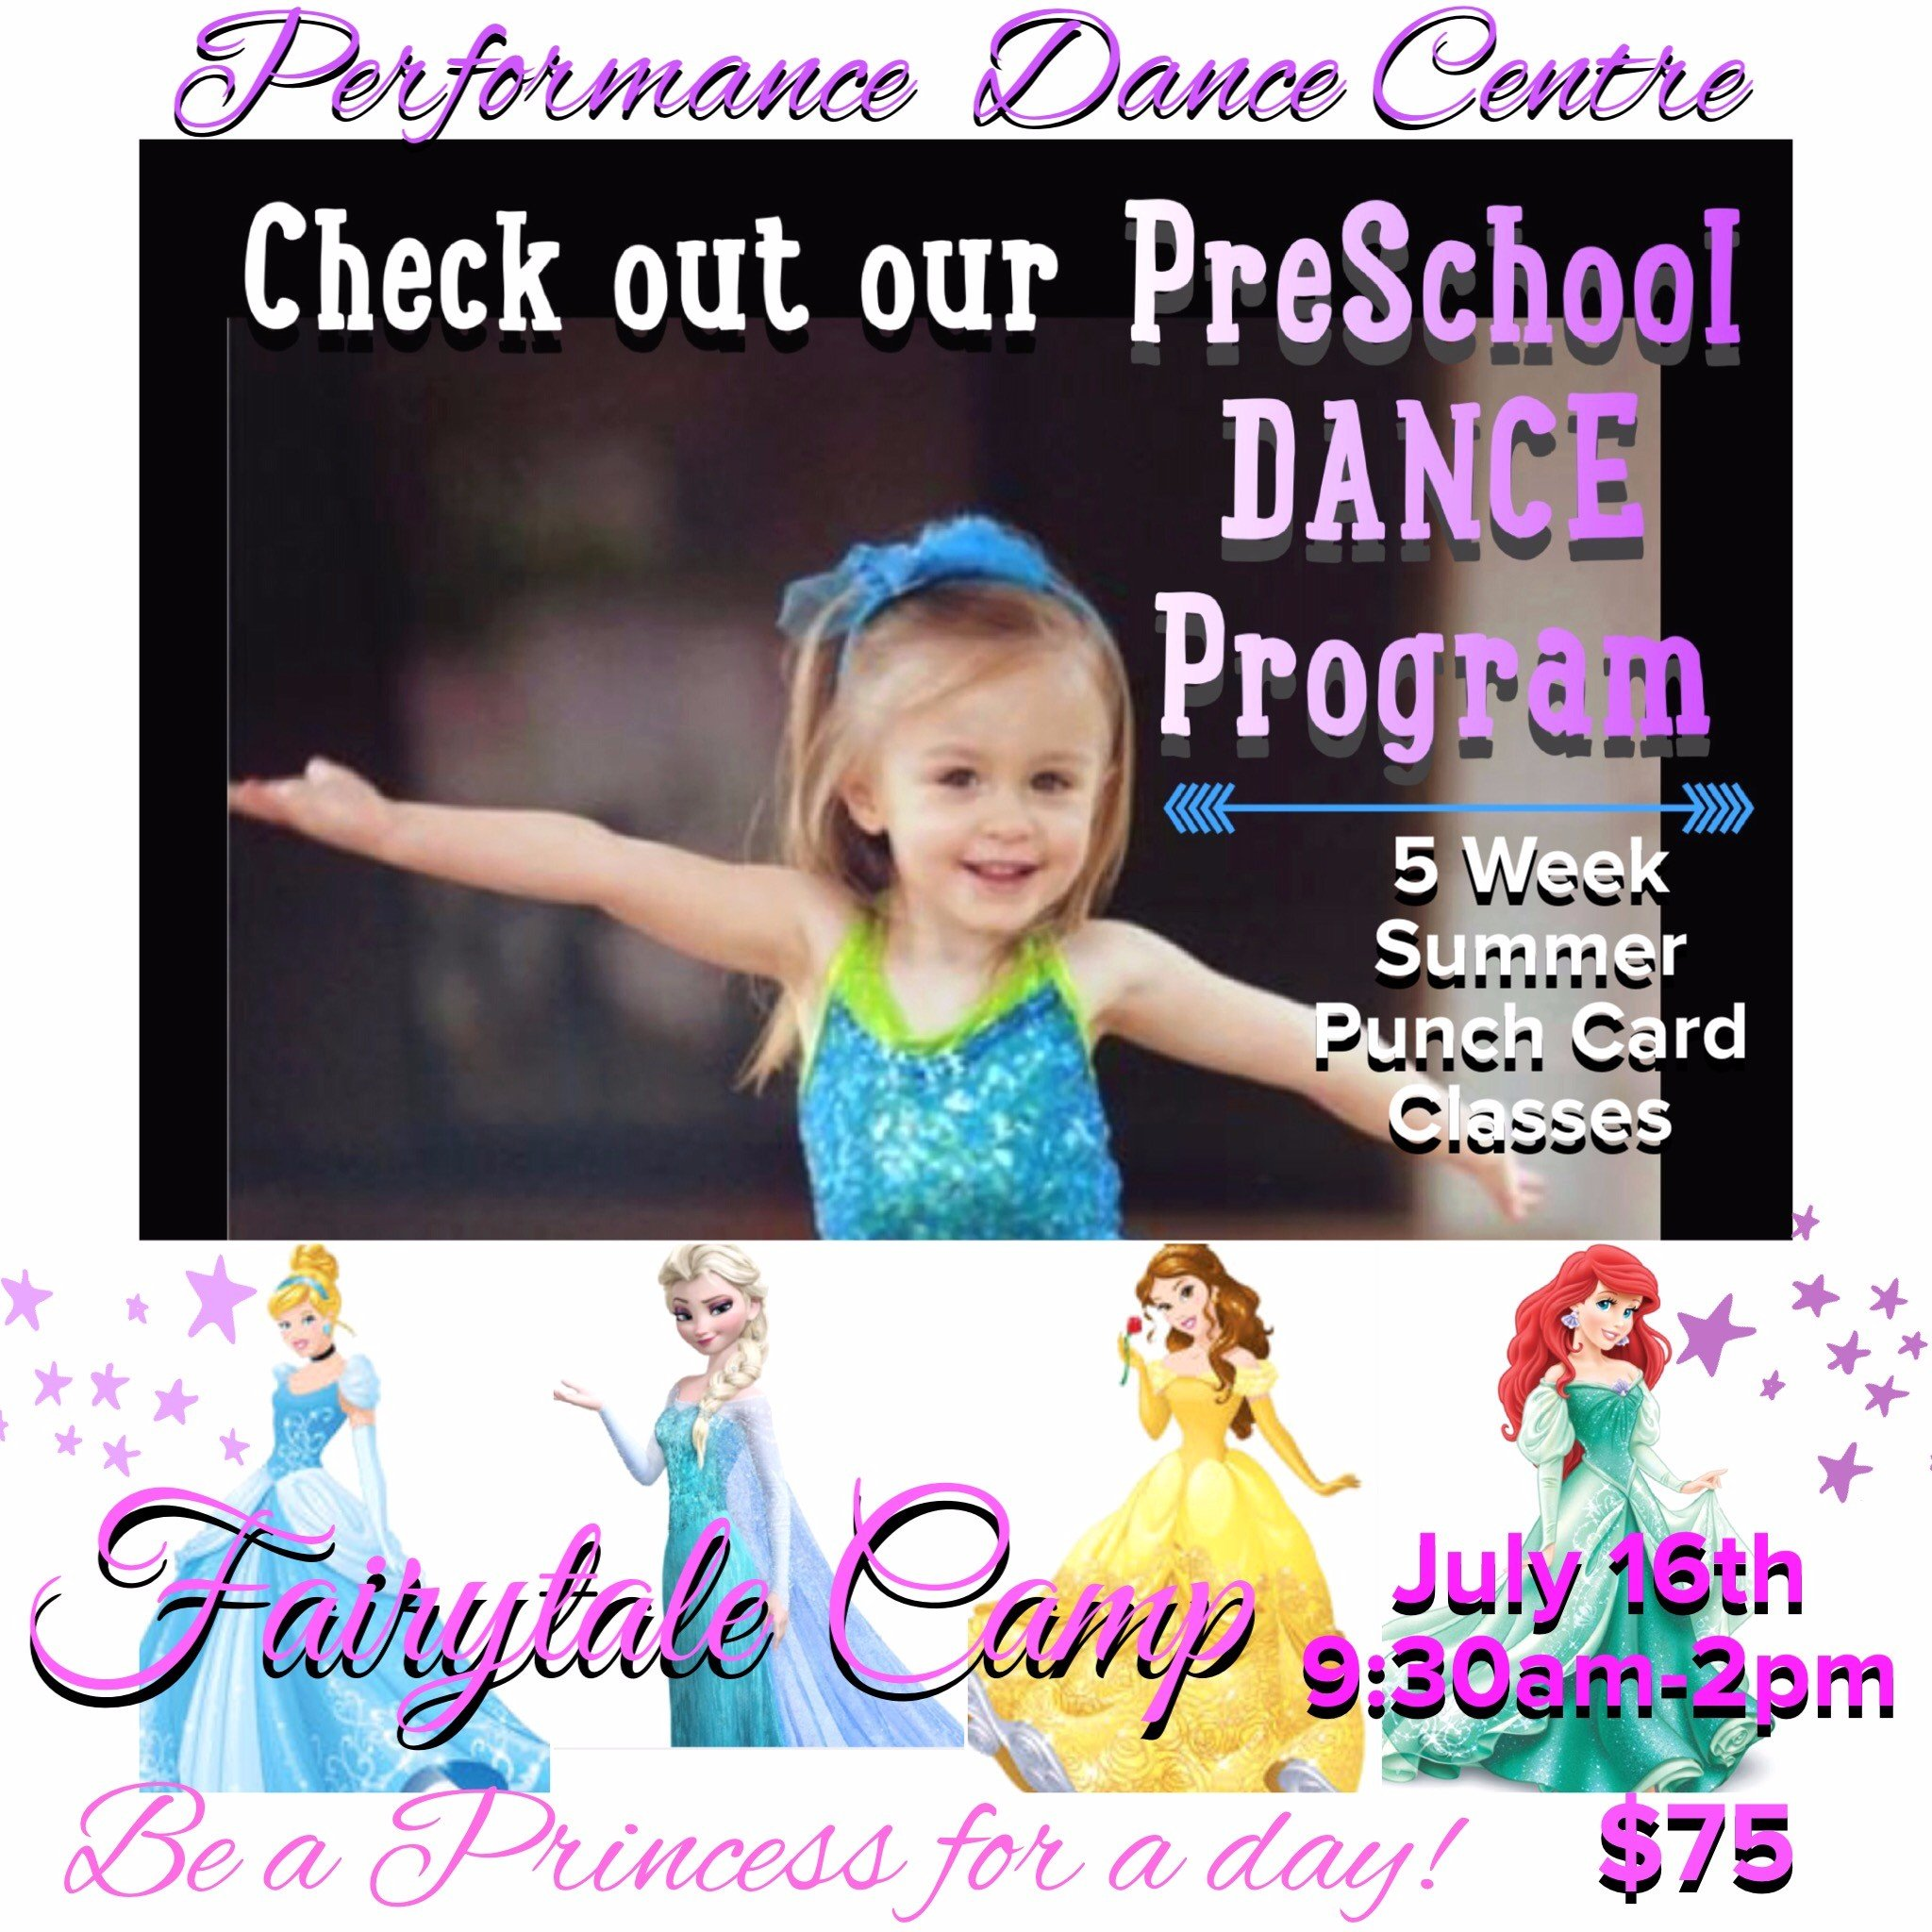 Performance Dance Preschool ad